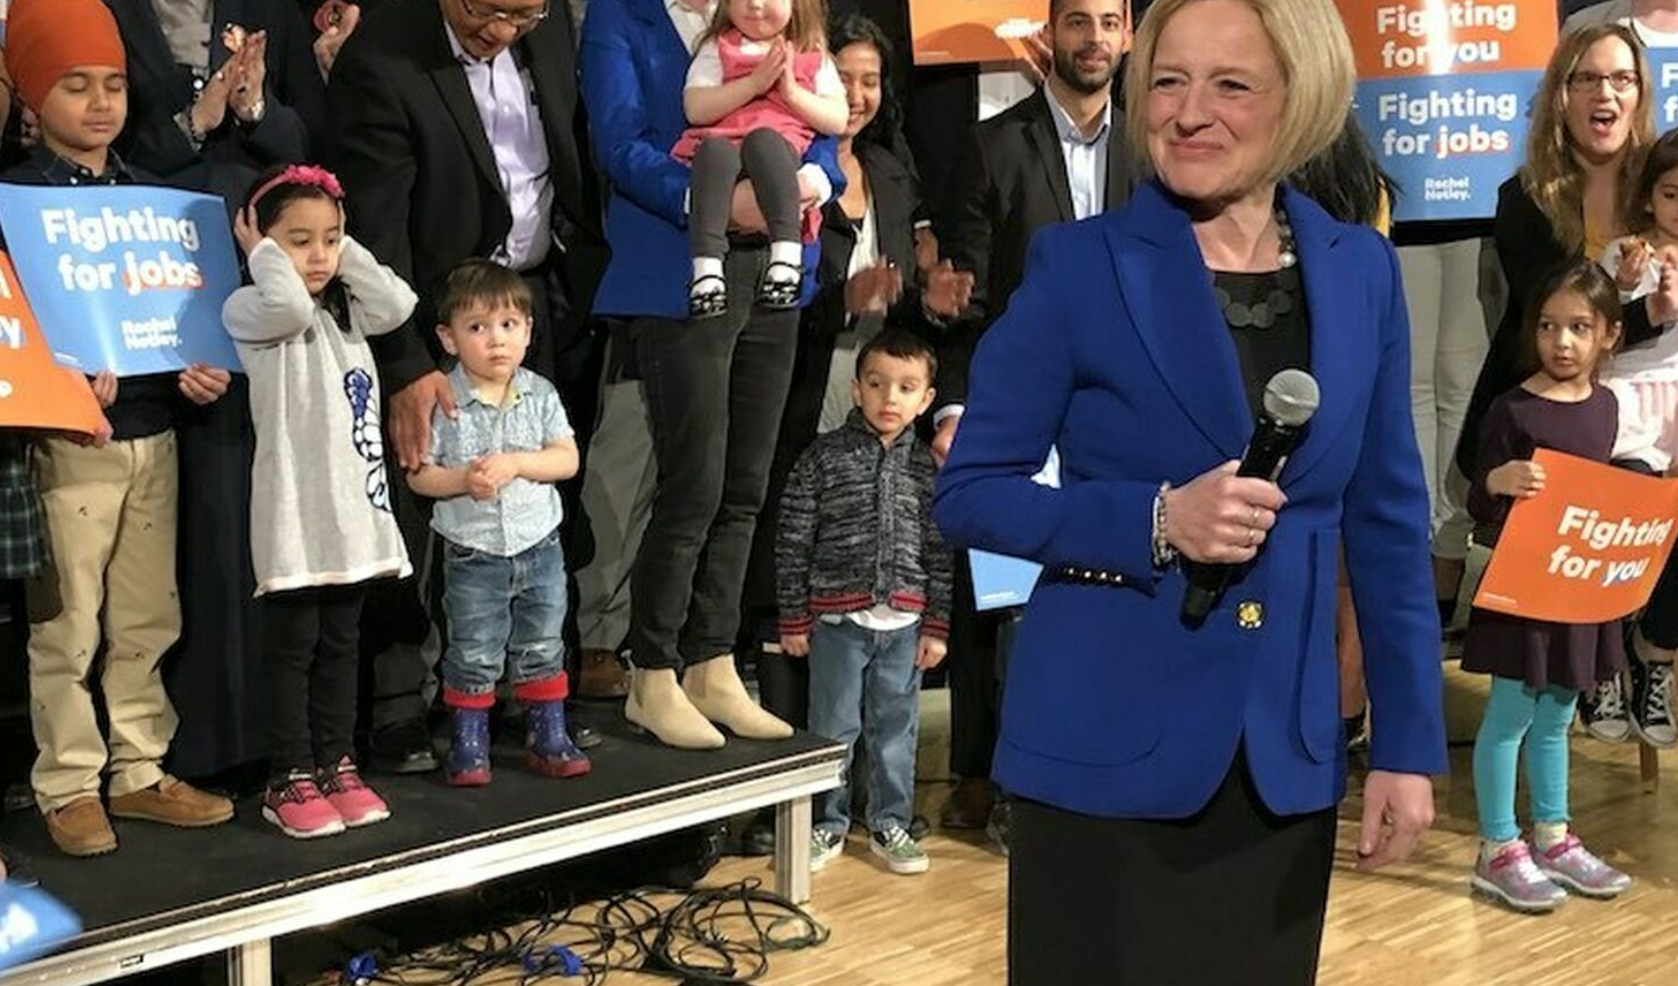 Rachel Notley kicks off her campaign at the National Music Centre. (Photo: Jeremy Klaszus, Editor of The Sprawl)